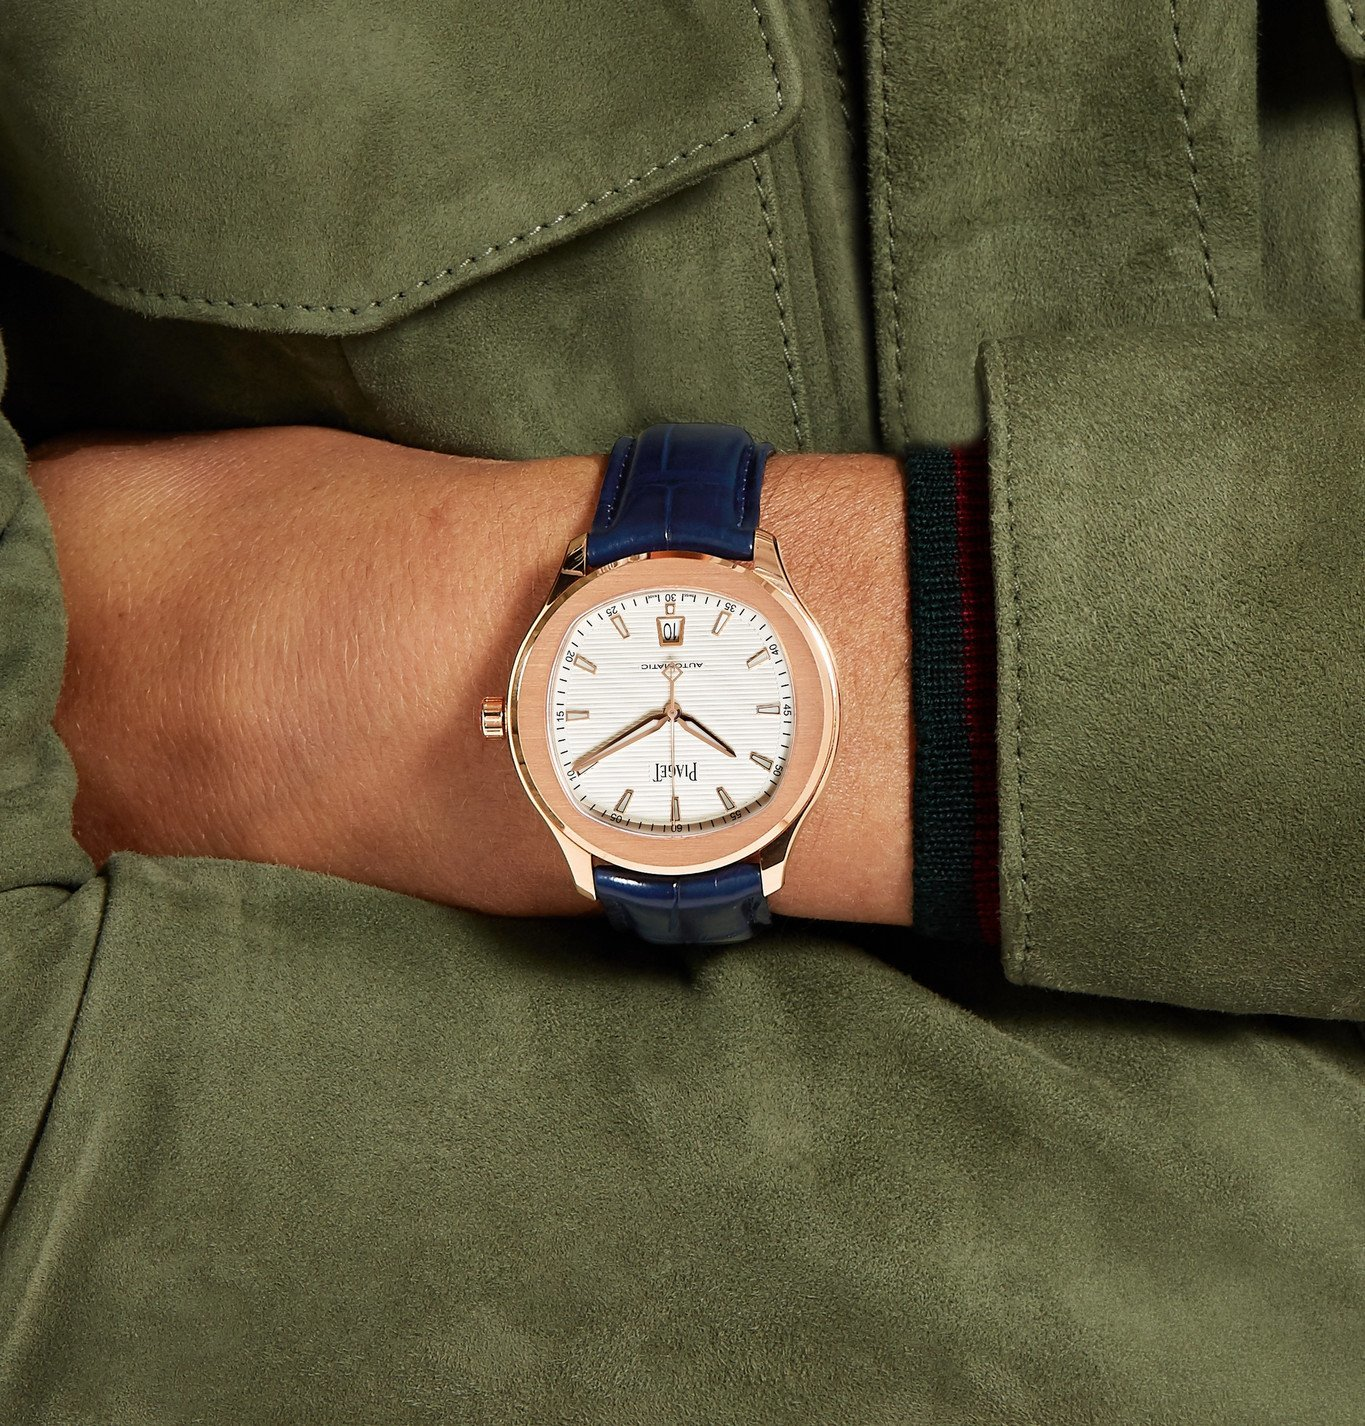 Piaget - Polo S Automatic 42mm 18-Karat Rose Gold and Alligator Watch, Ref. No. G0A43010 - Blue